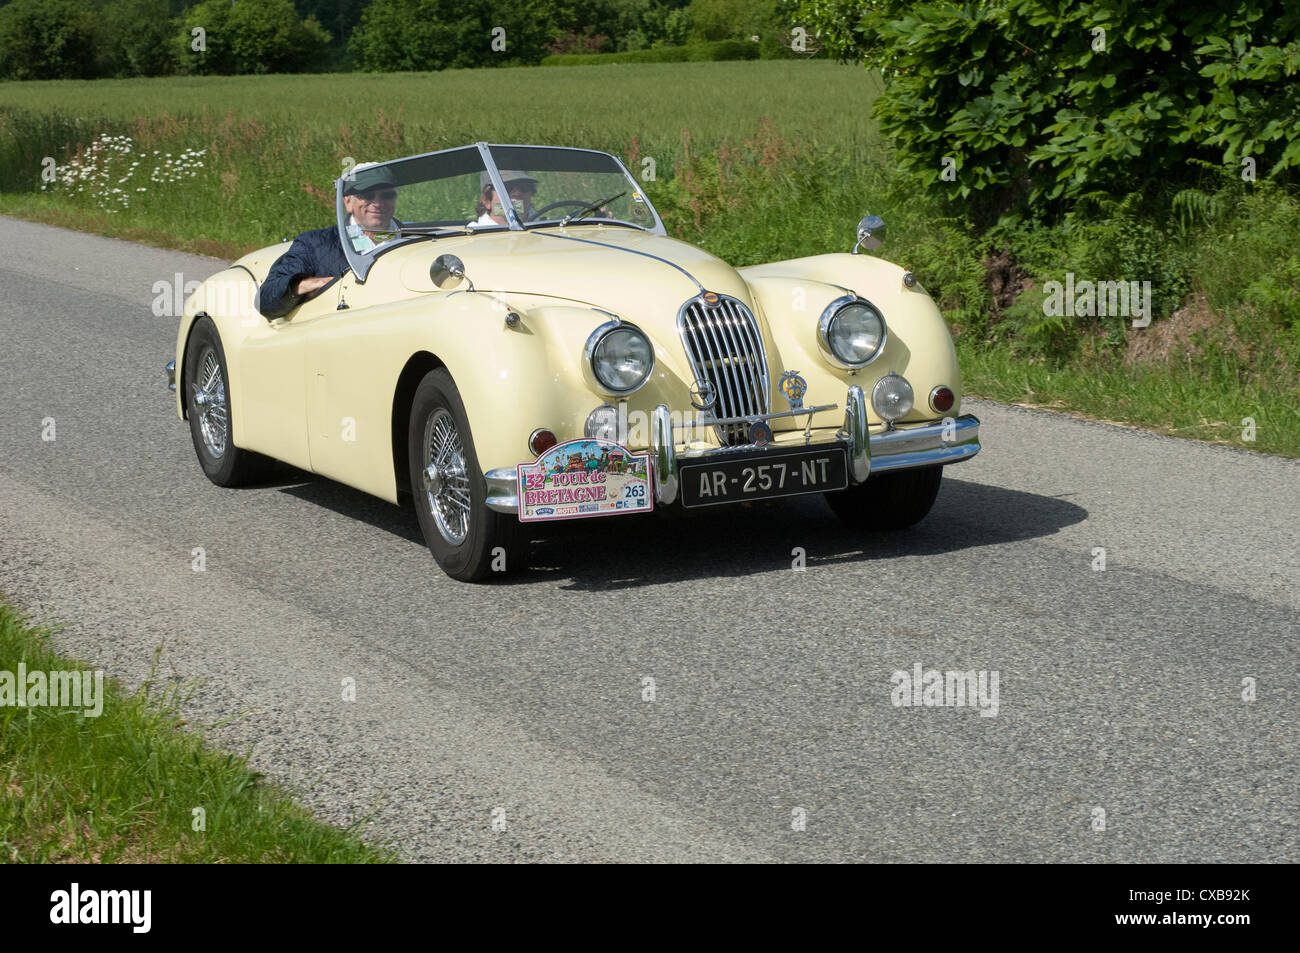 Jaguar XK140 Roadster Of 1956 In The Tour De Bretagne, France, 2012   Stock